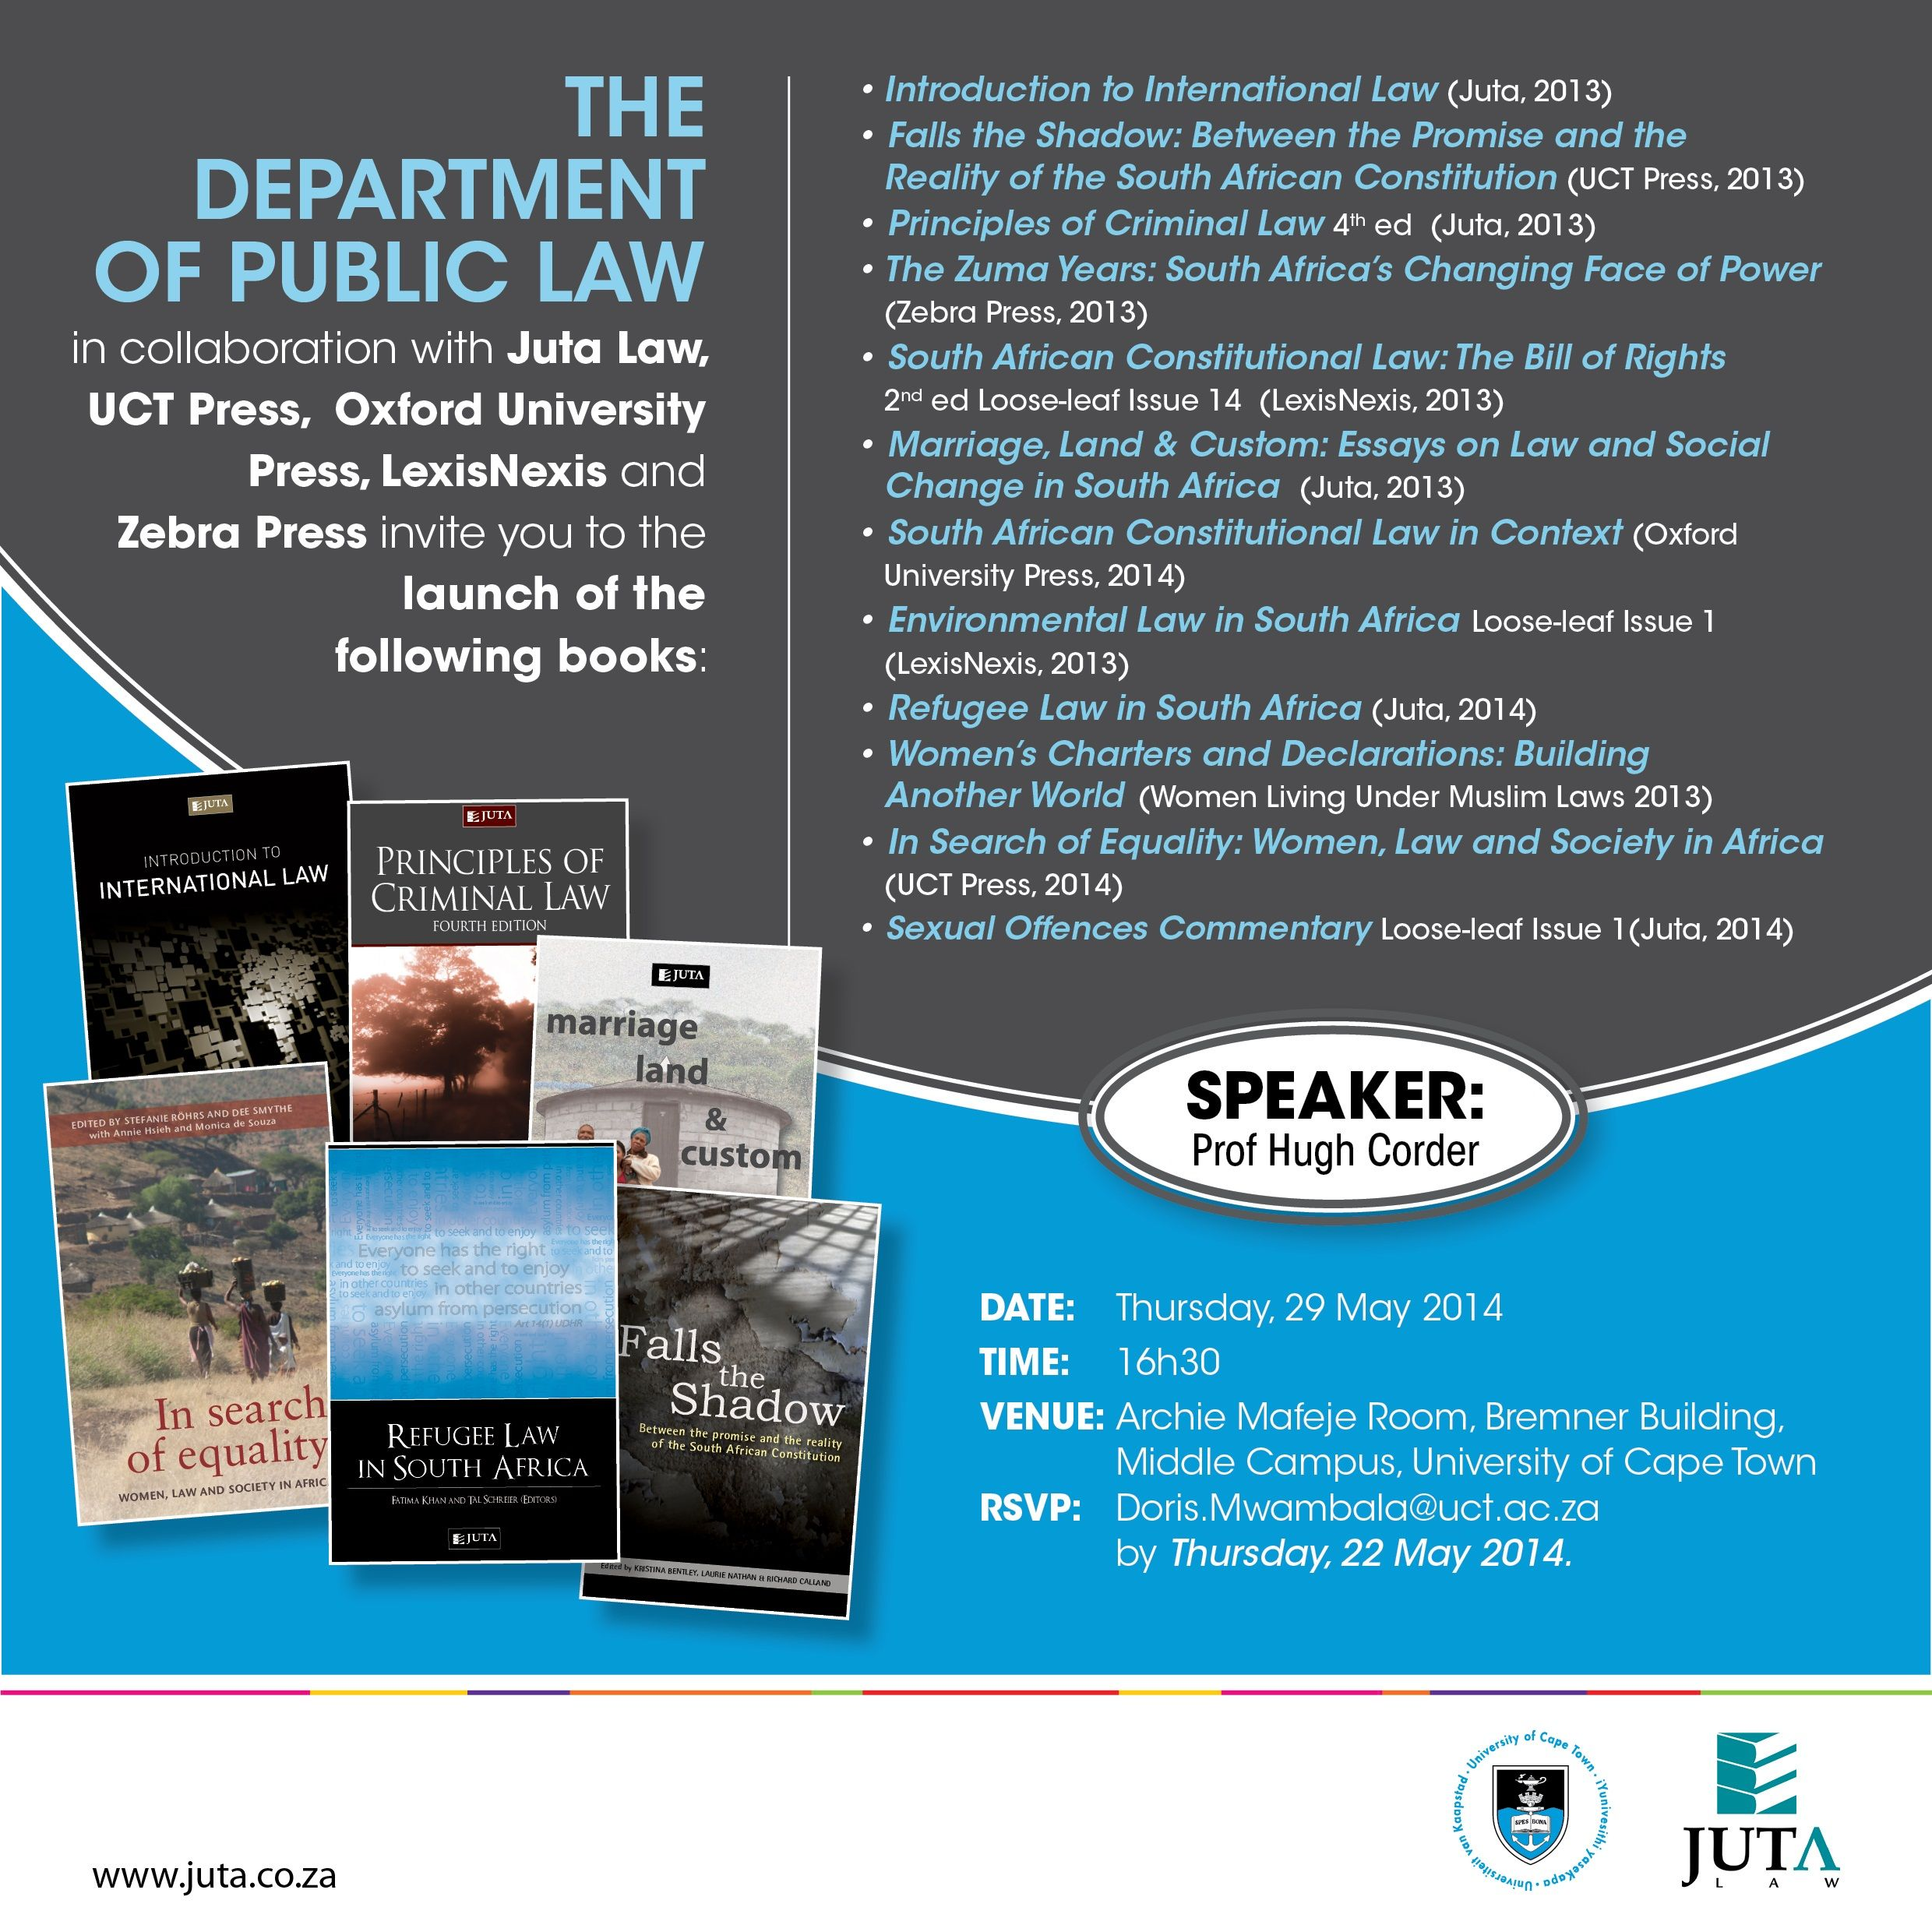 The Department Of Public Law In Collaboration With Juta Uct Press